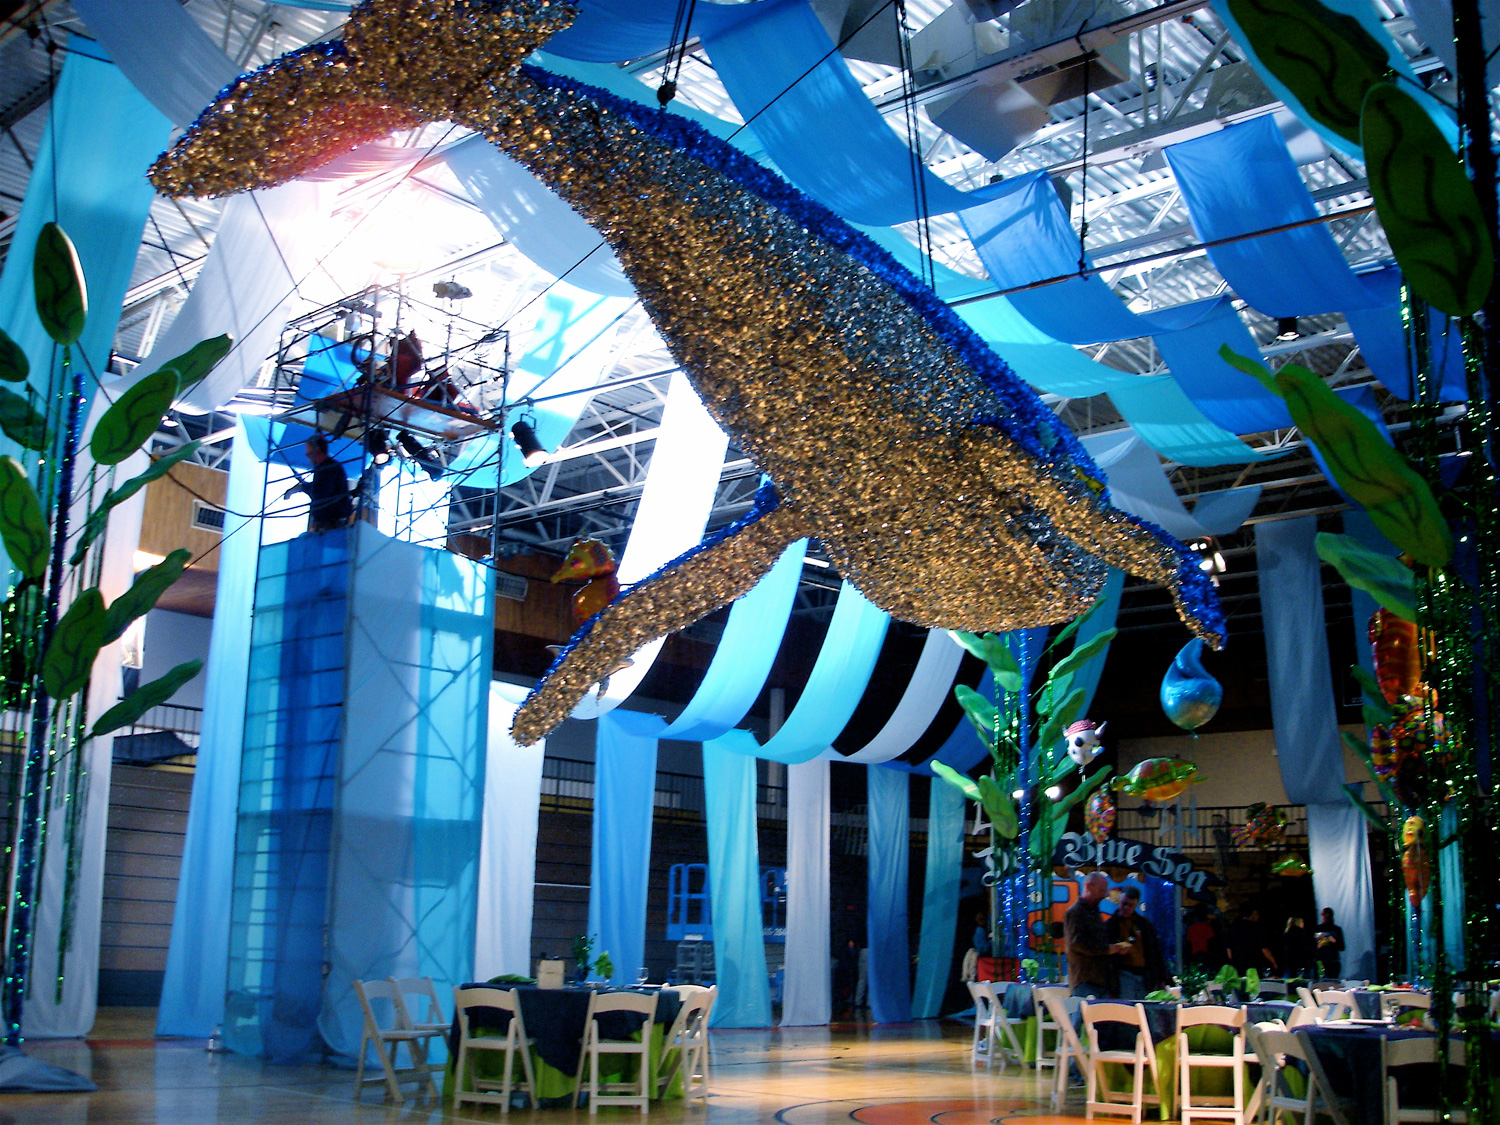 """A photo of the completed articulated whale and kelp towers at the """"Deep Blue Sea"""" themed prom scene from """"Read it and Weep"""" (2006)."""